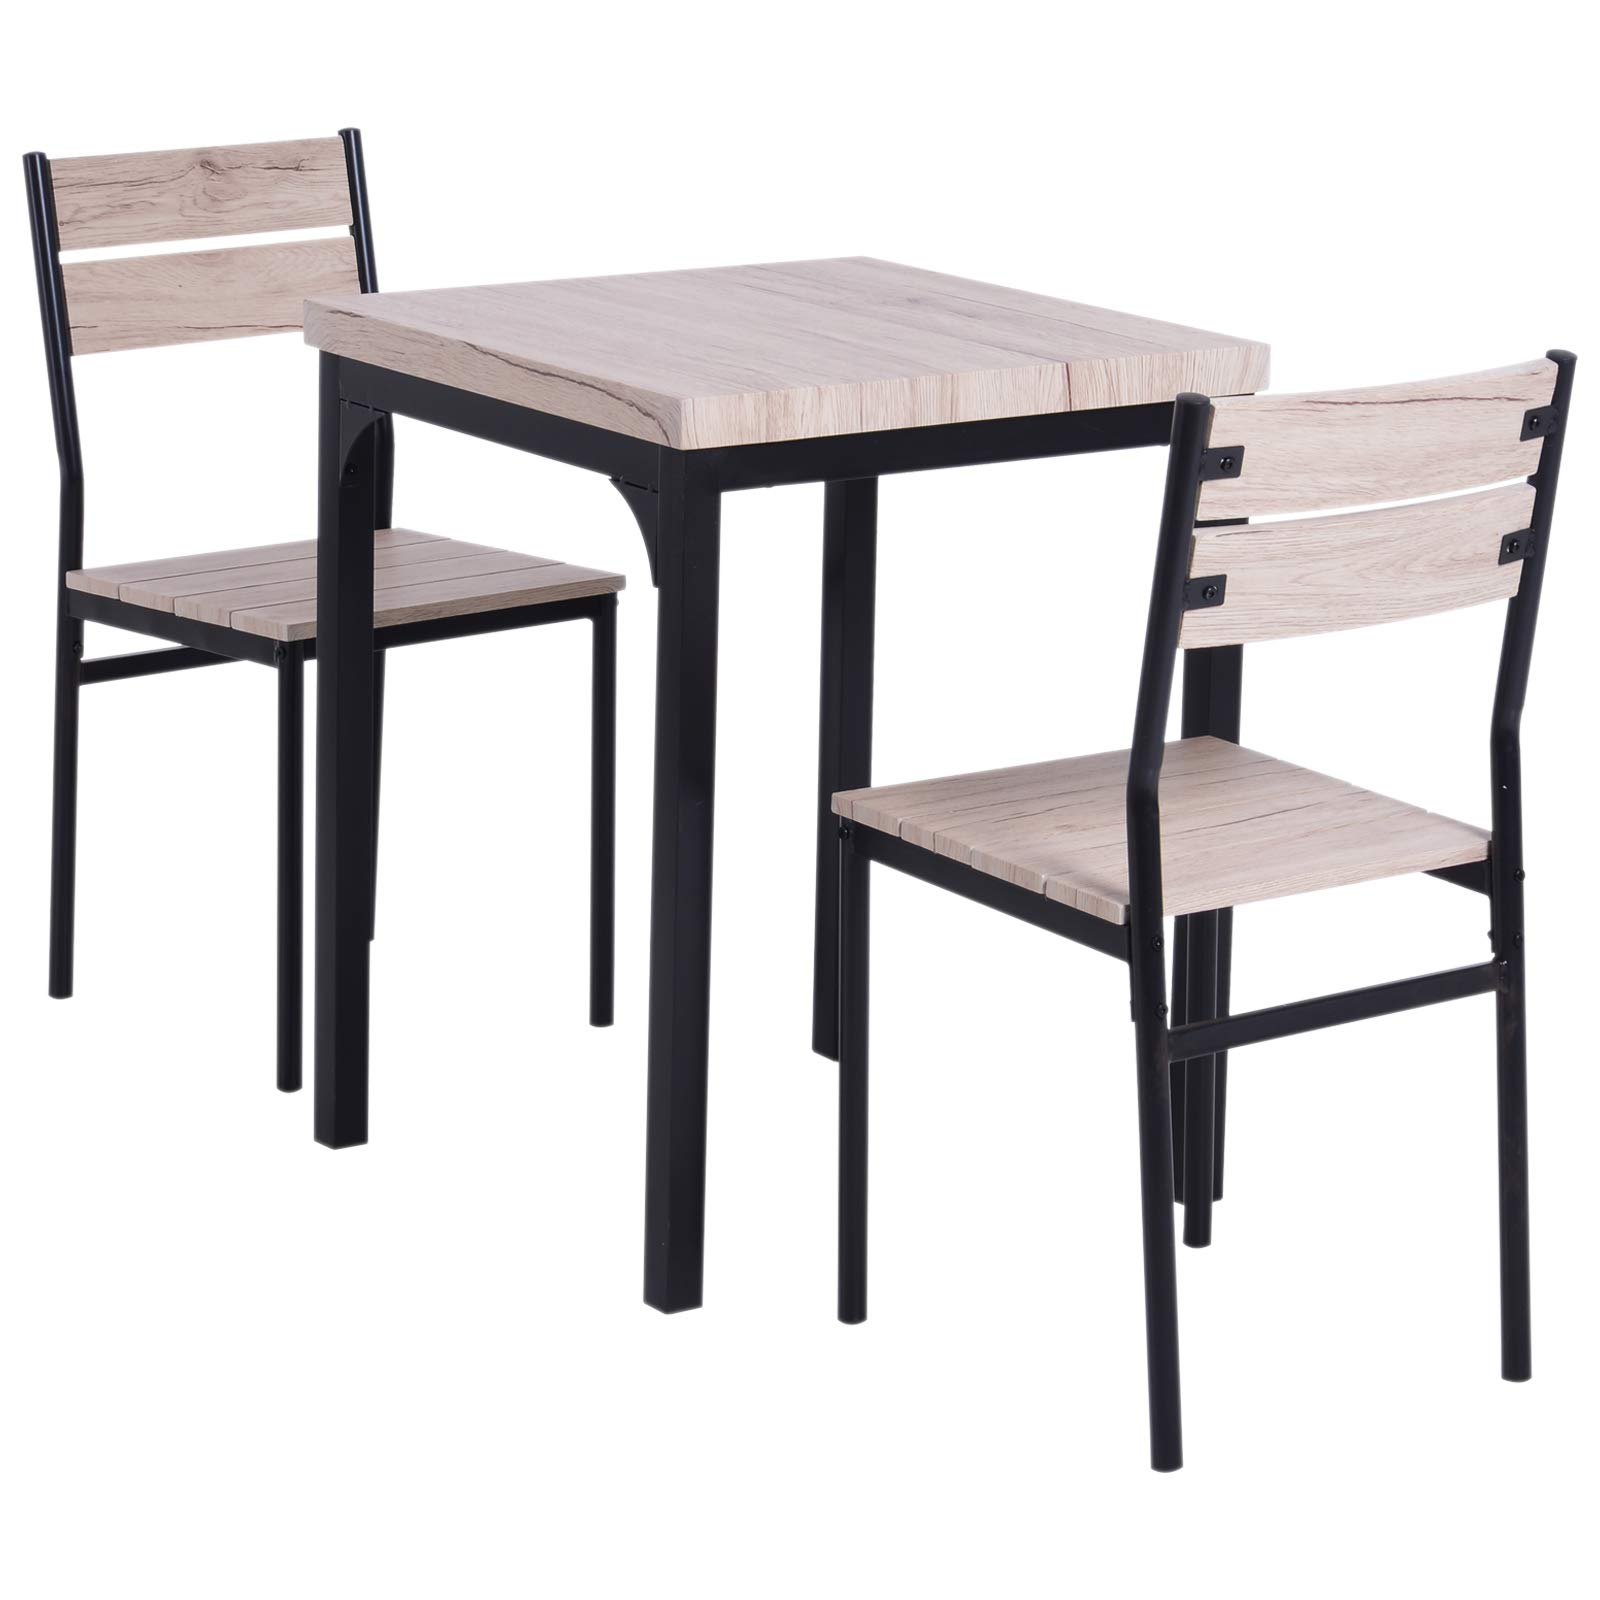 HOMCOM Rustic Country Wood Top 3 Piece Kitchen Table Dining Set w/Chairs by HOMCOM